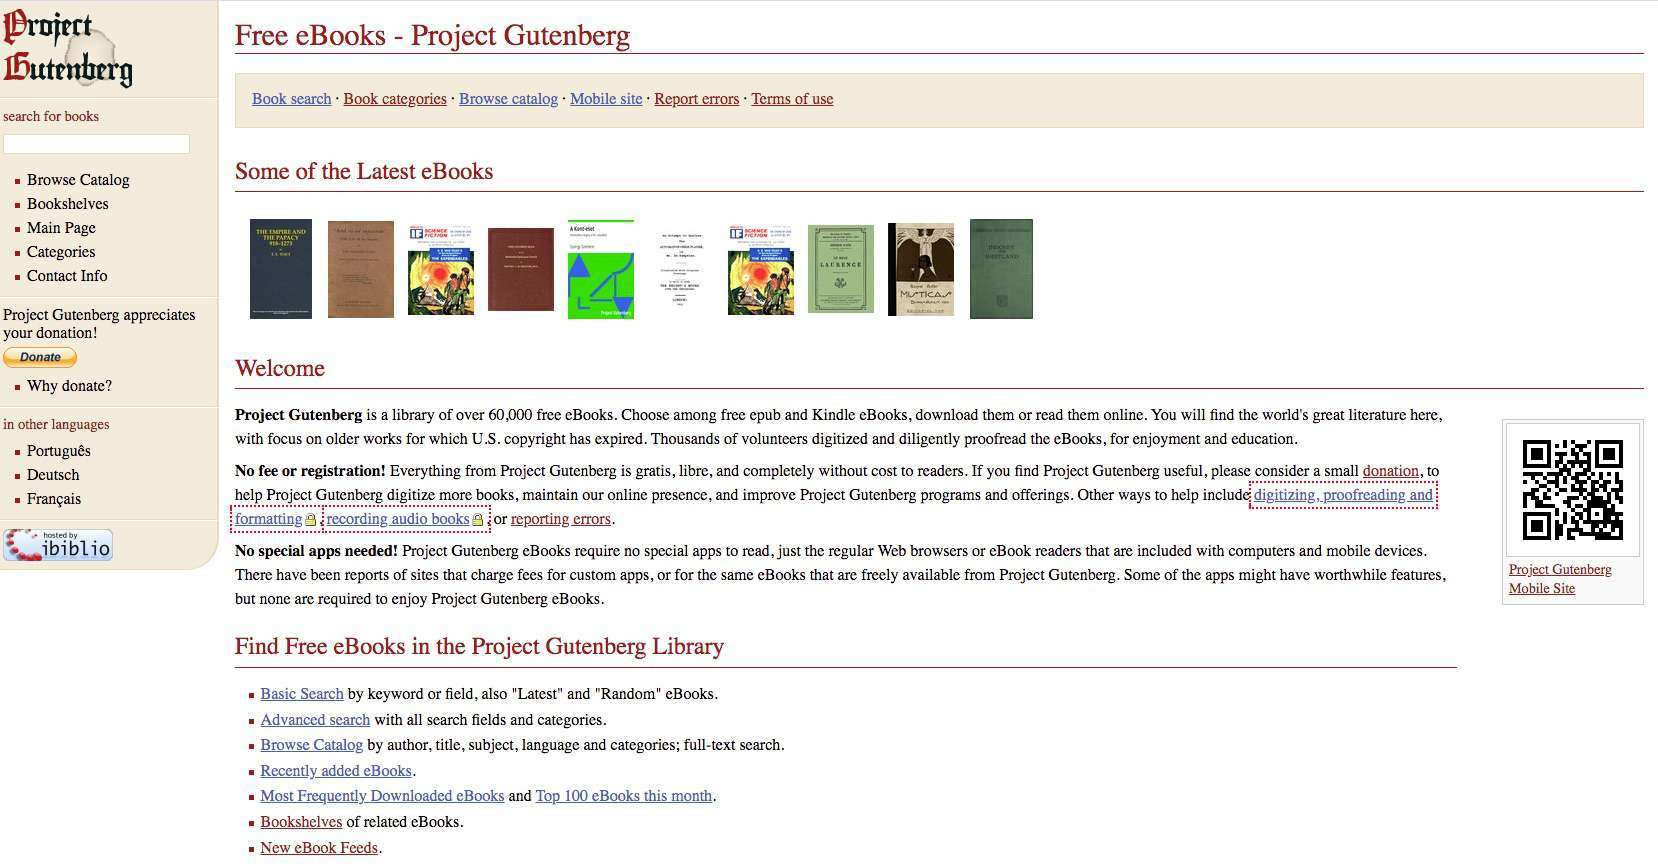 Project Gutenberg, where you can download free eBooks for the Nook